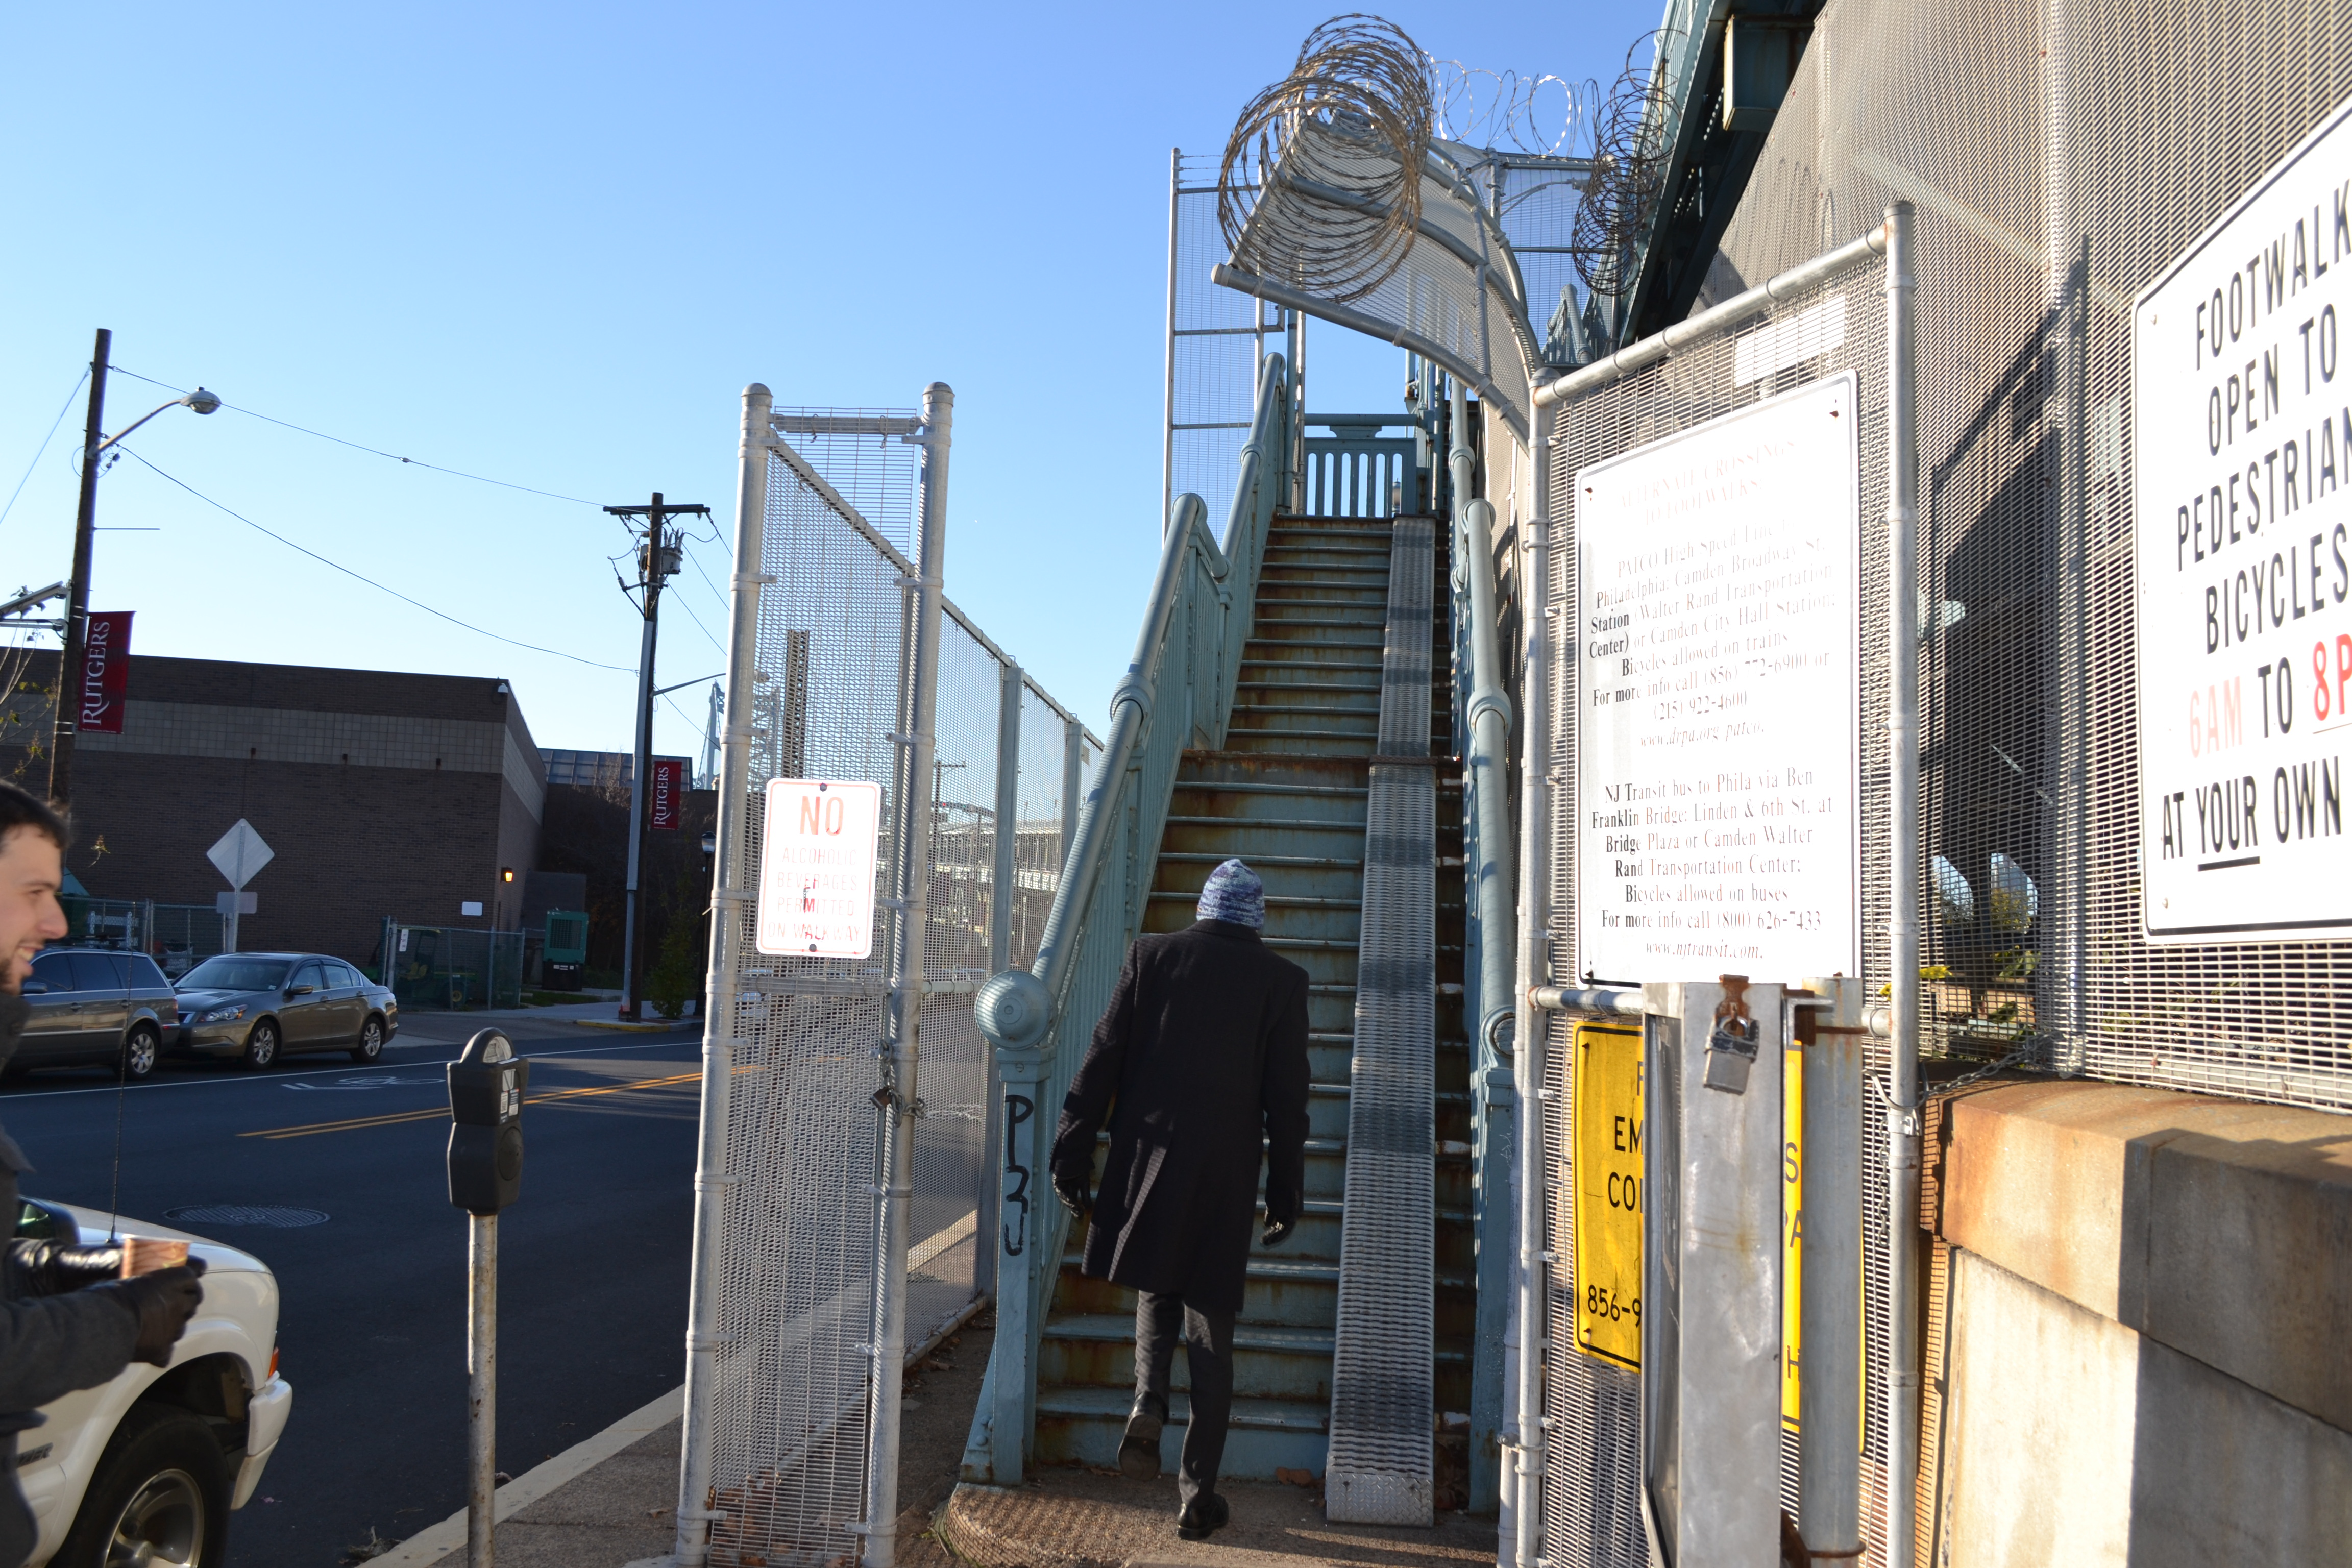 DRPA received $400,000 to replace the stairs up to the Ben Franklin Bridge with an ADA-compliant bicycle and pedestrian ramp